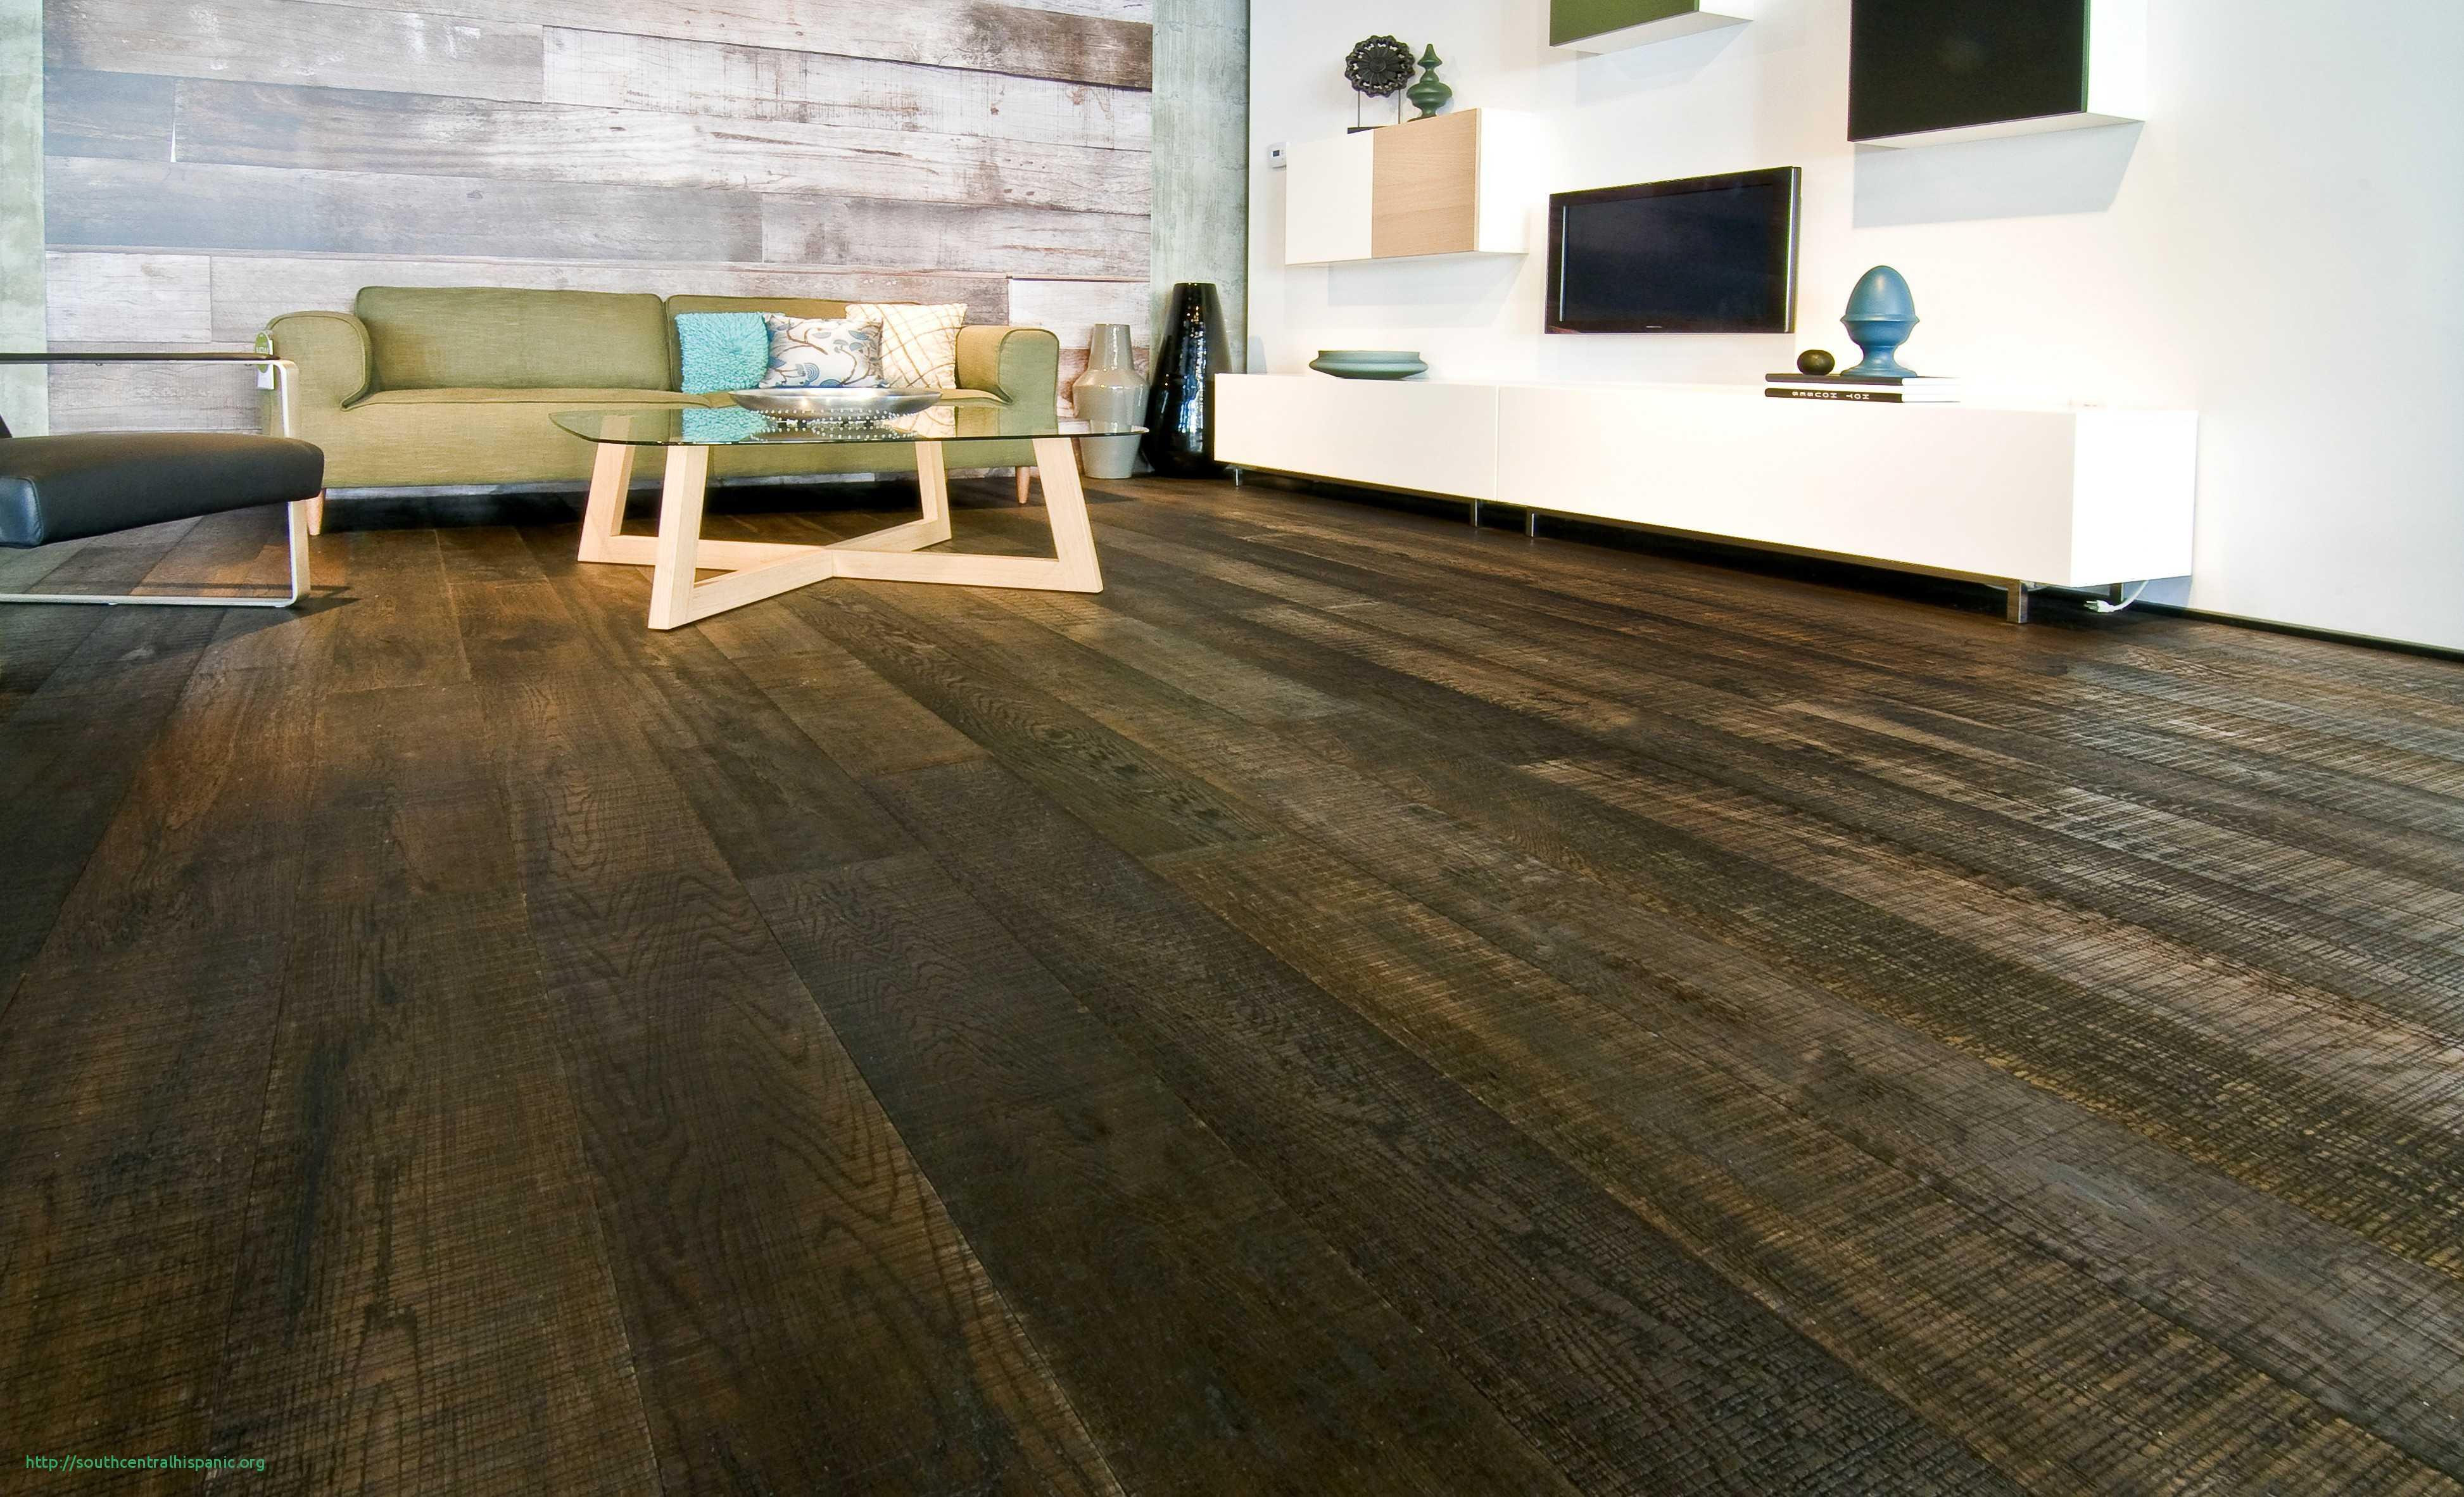 wholesale hardwood flooring dalton georgia of elegant how to clean vinyl wood floors concept intended for od best place to buy laminate flooring beau engaging discount hardwood flooring 5 where to buy